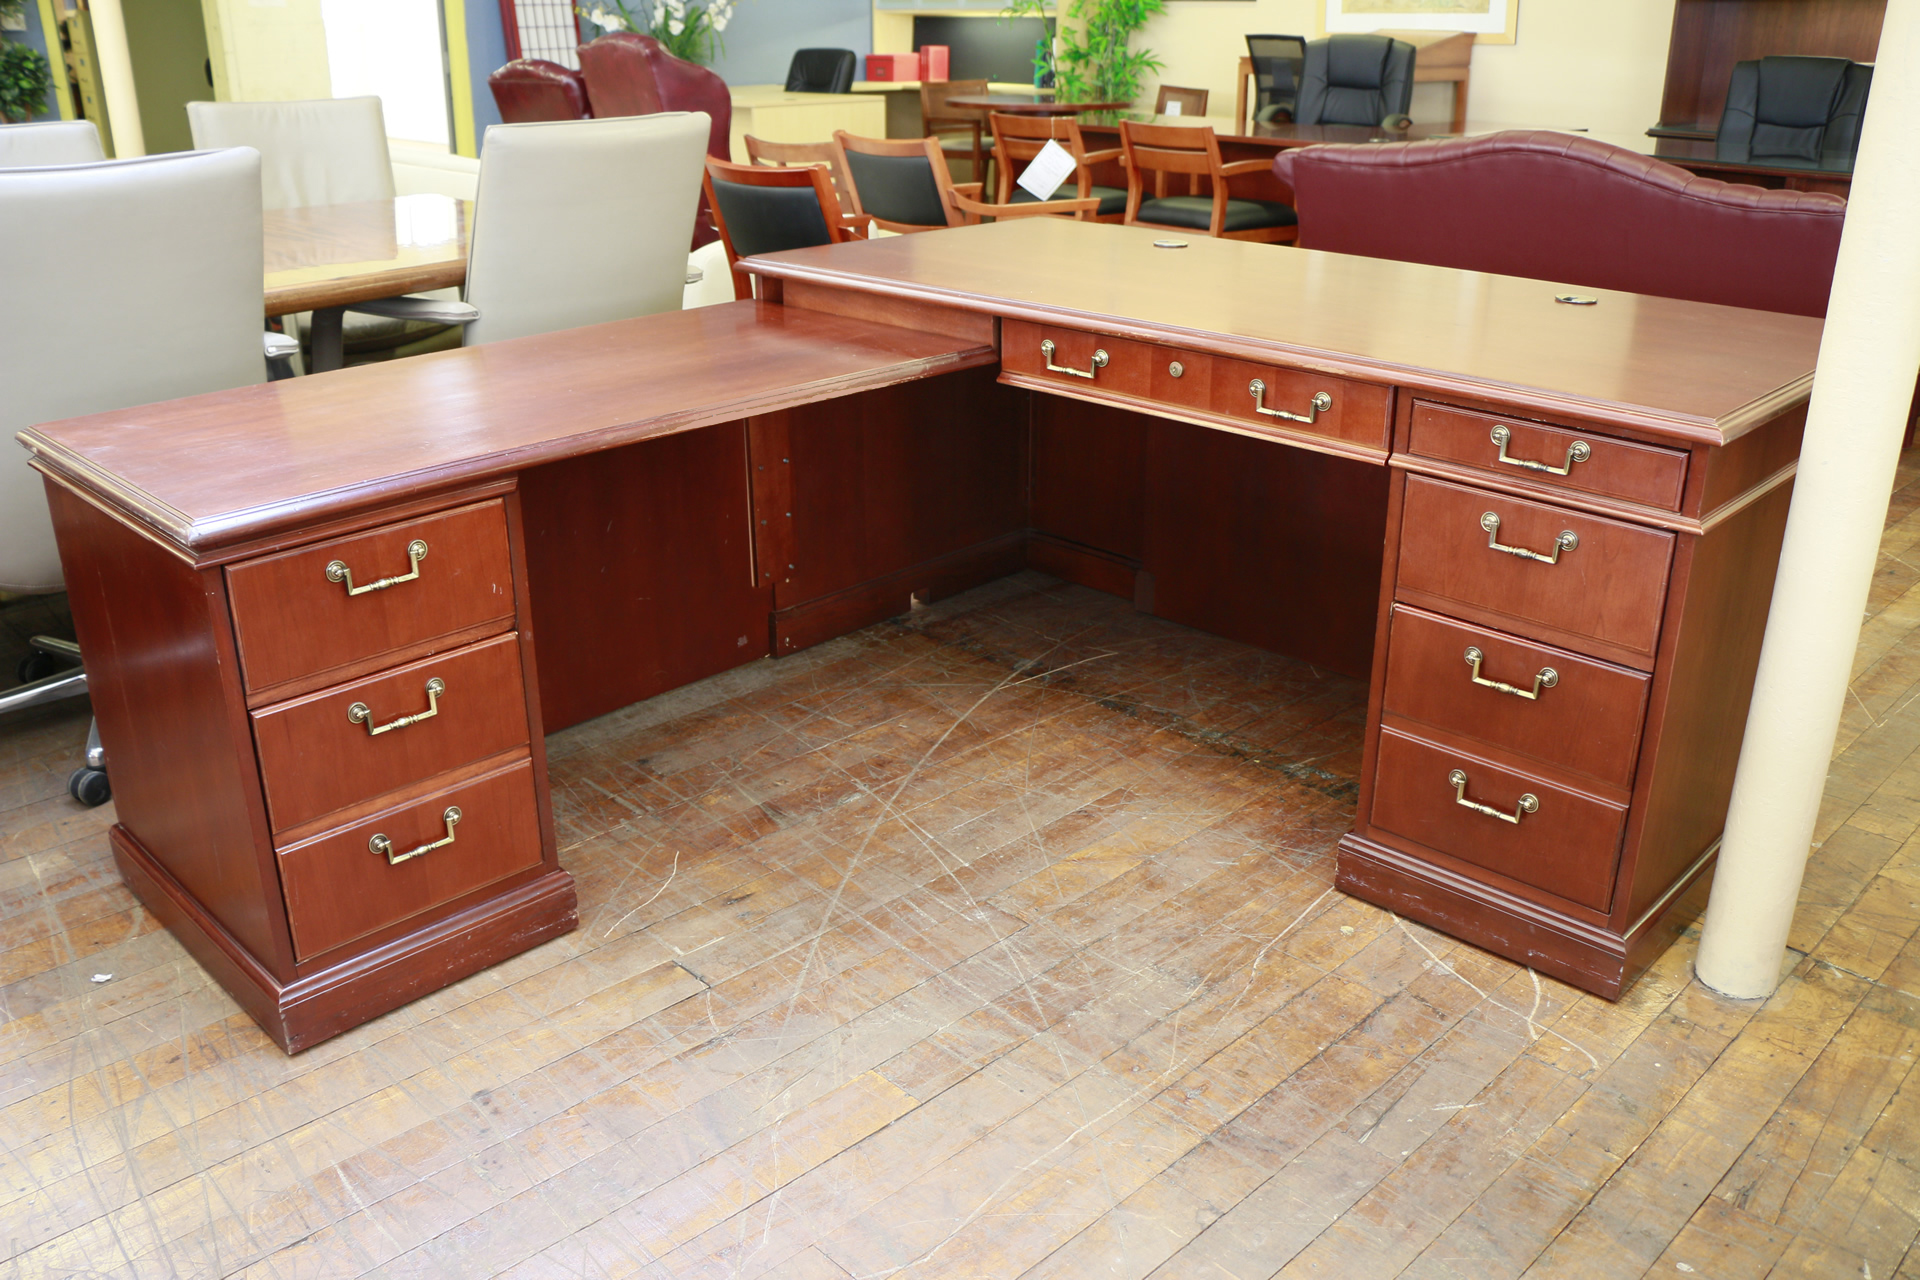 peartreeofficefurniture_peartreeofficefurniture_mg_3700.jpg